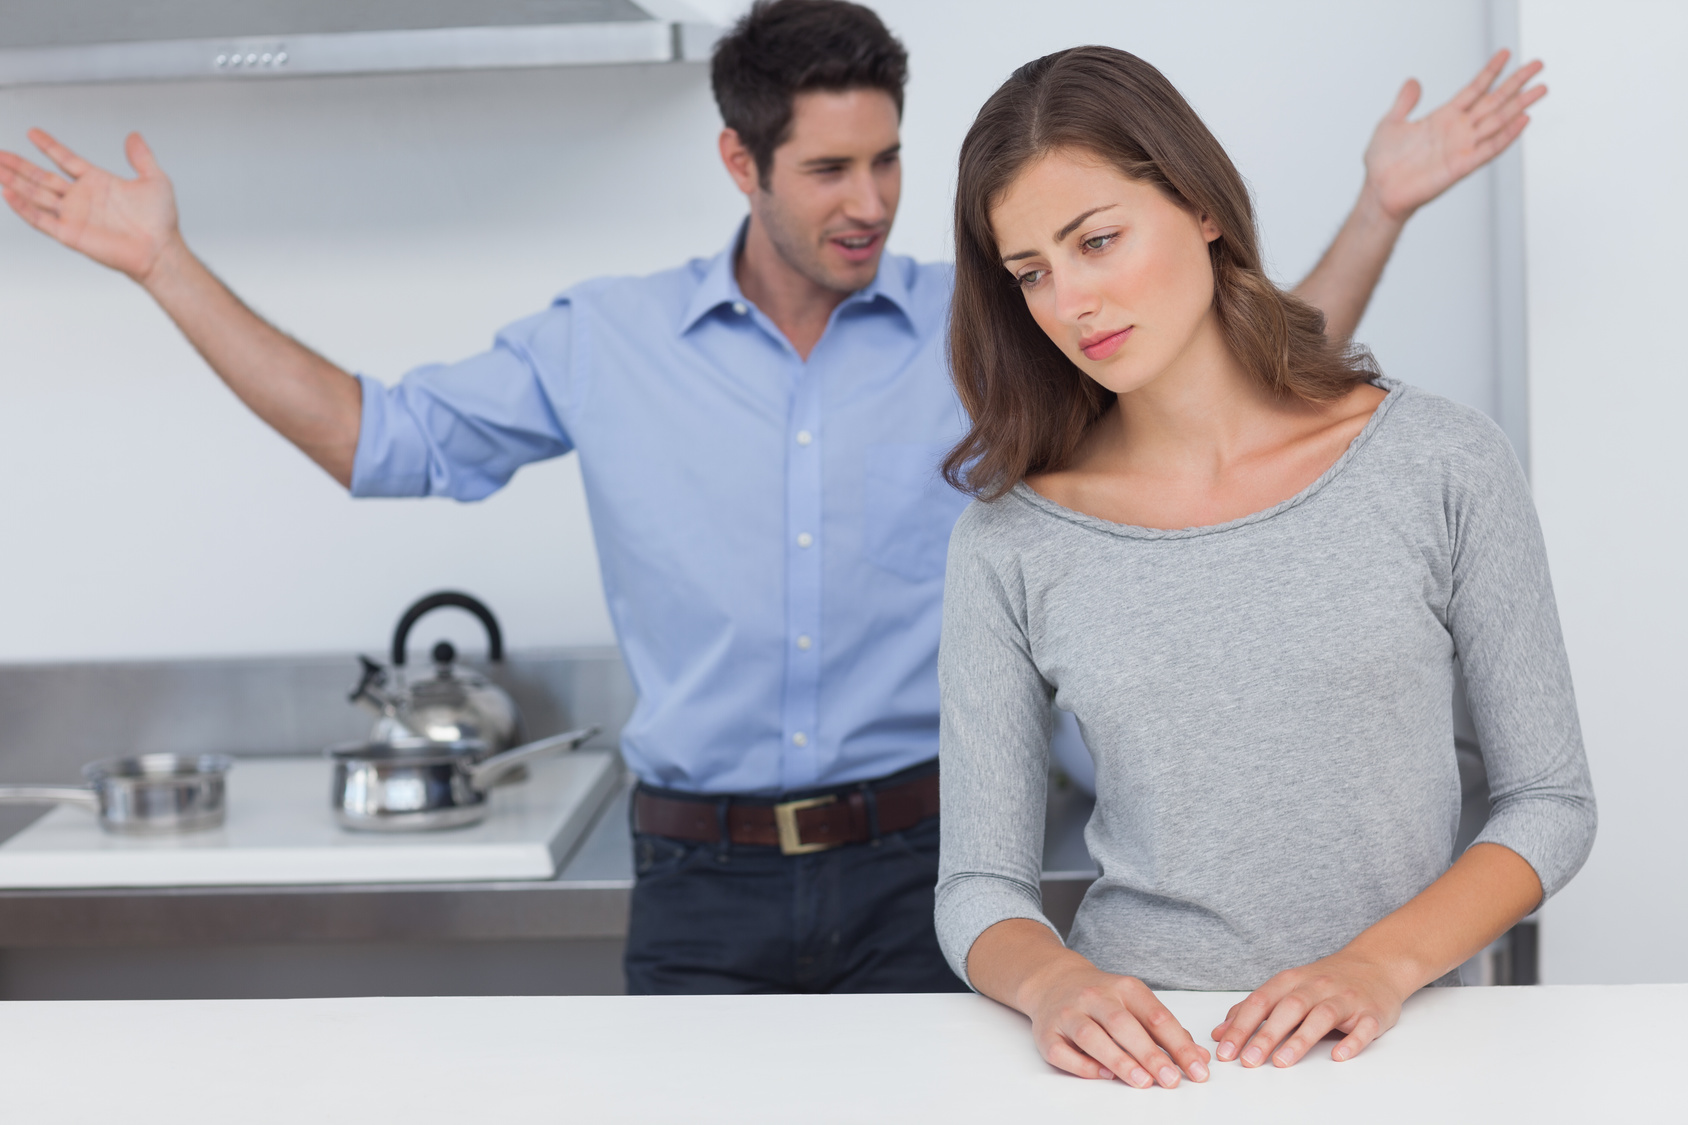 Man gesturing to wife during a dispute in the kitchen